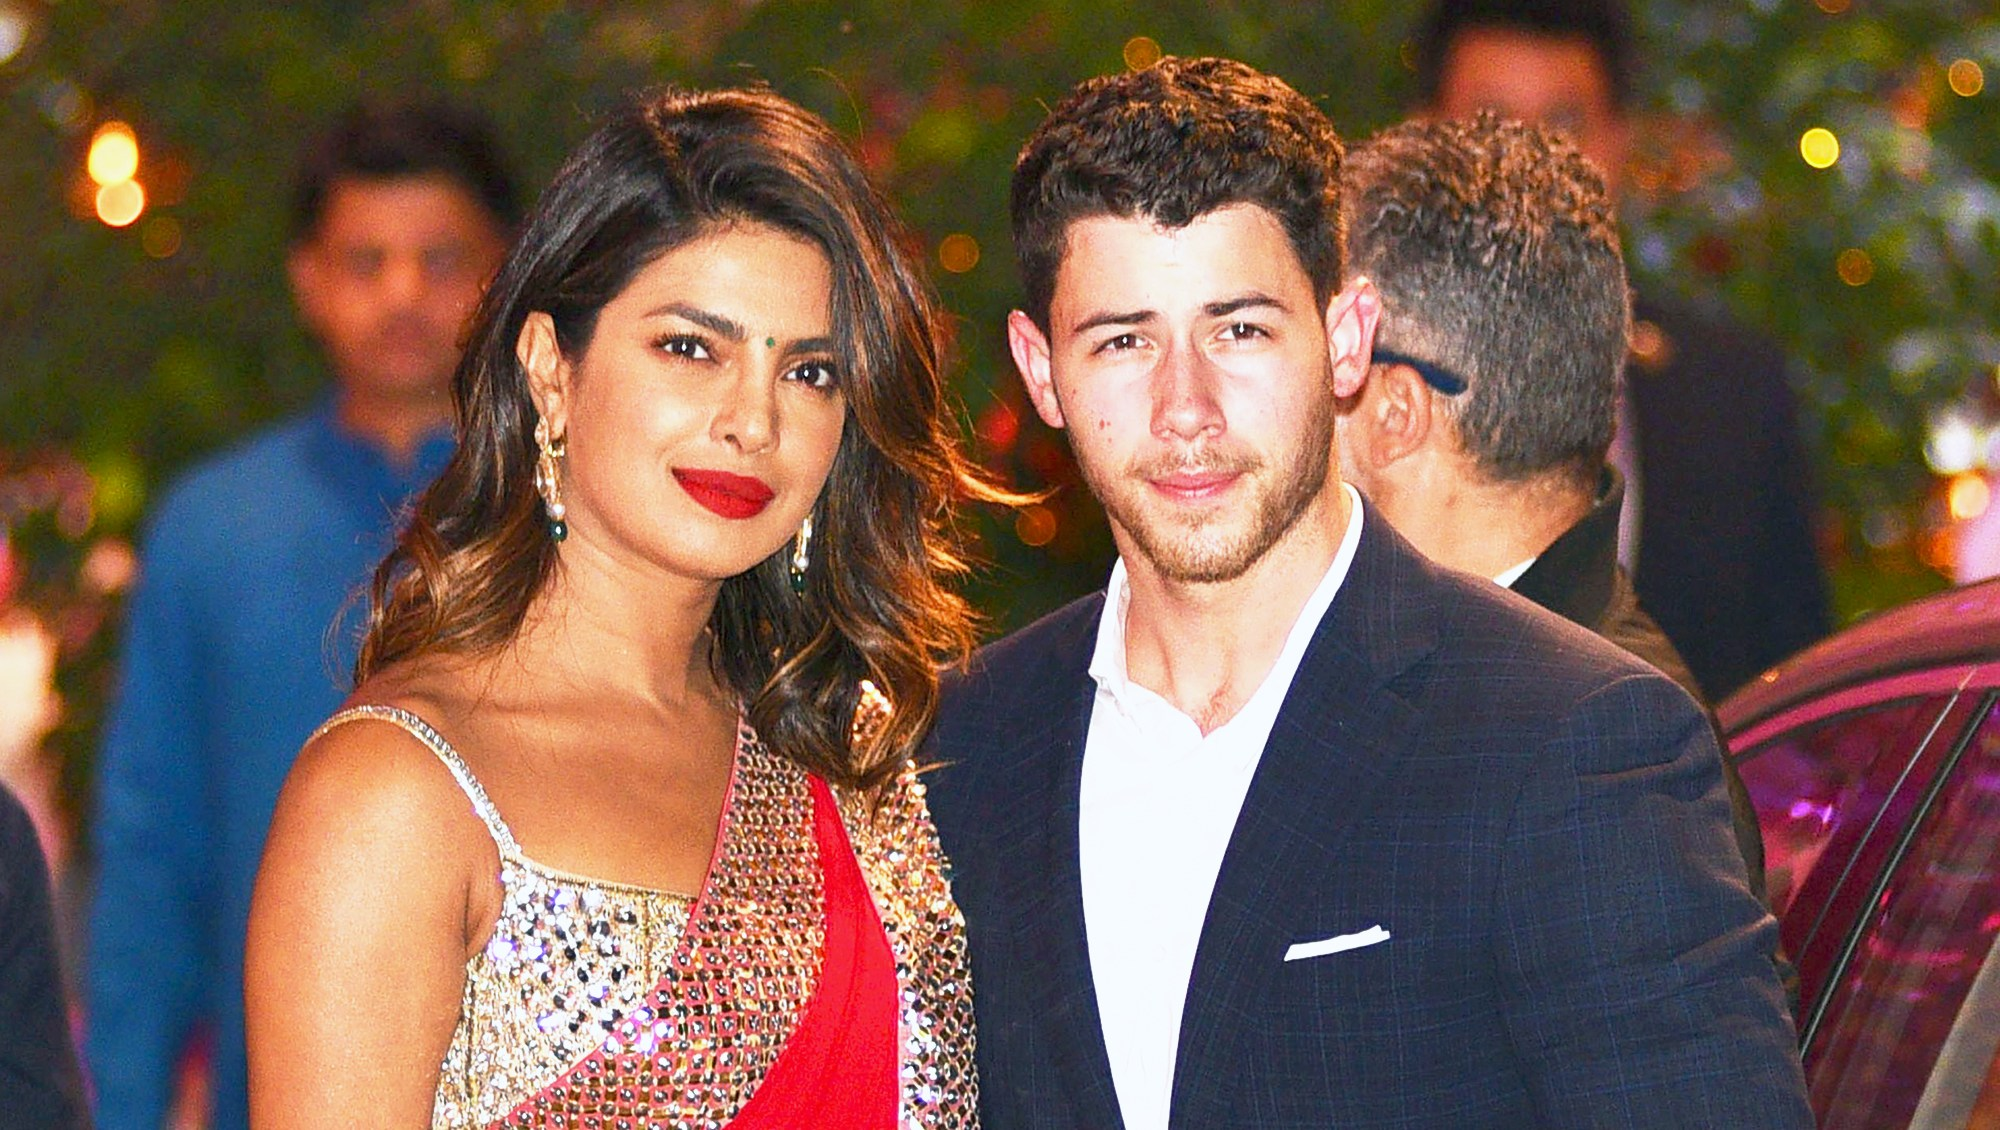 Priyanka Chopra and Nick Jonas arrive for the pre-engagement party in India on June 28, 2018.